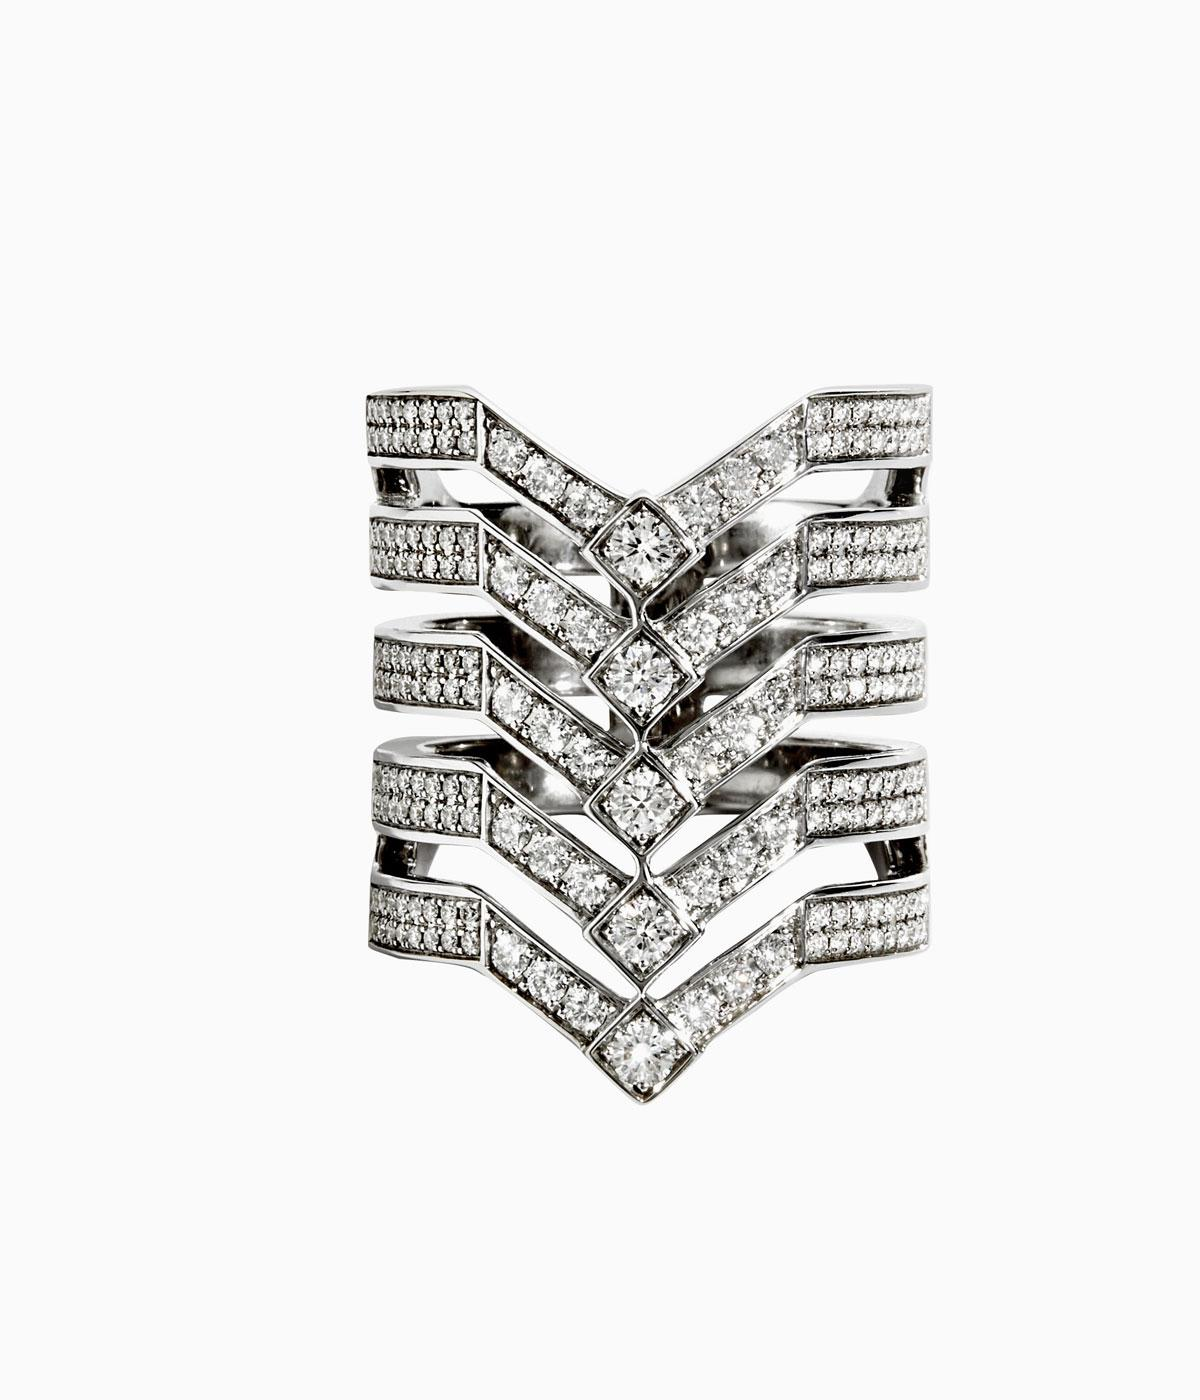 Statement diamond and silver ring